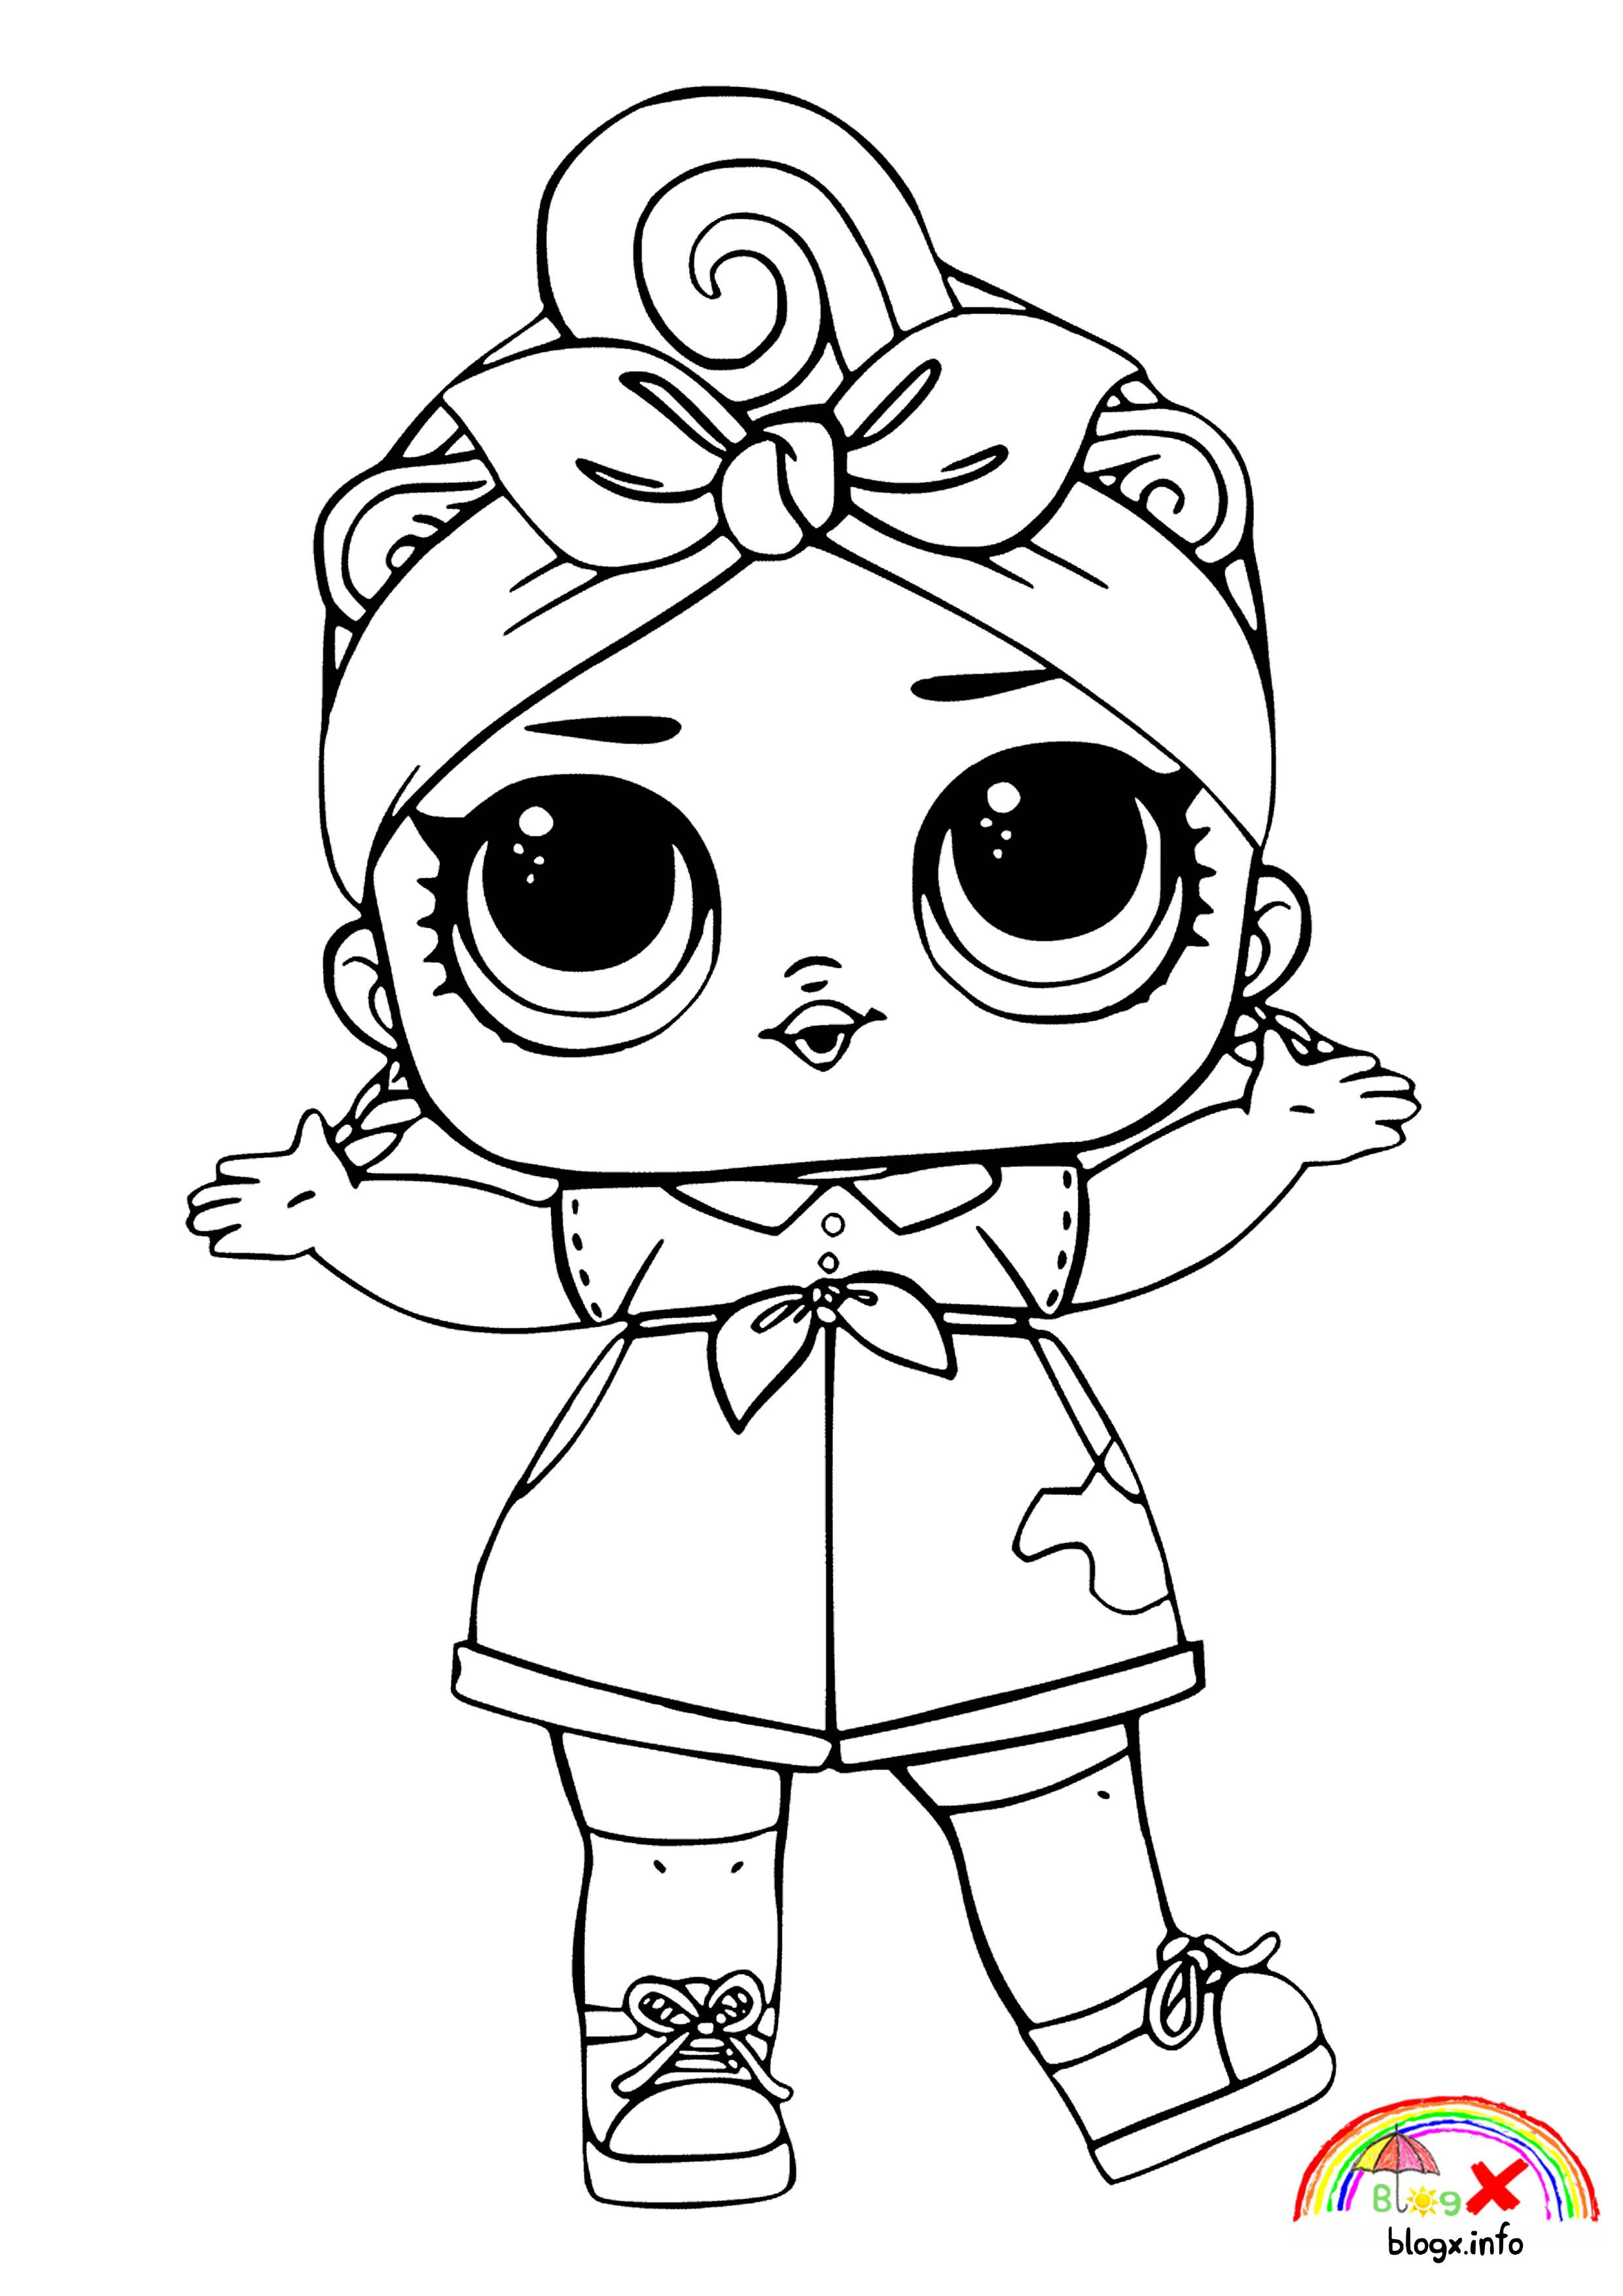 Hd Babe Lol Dolls Coloring Page With Images Cool Coloring